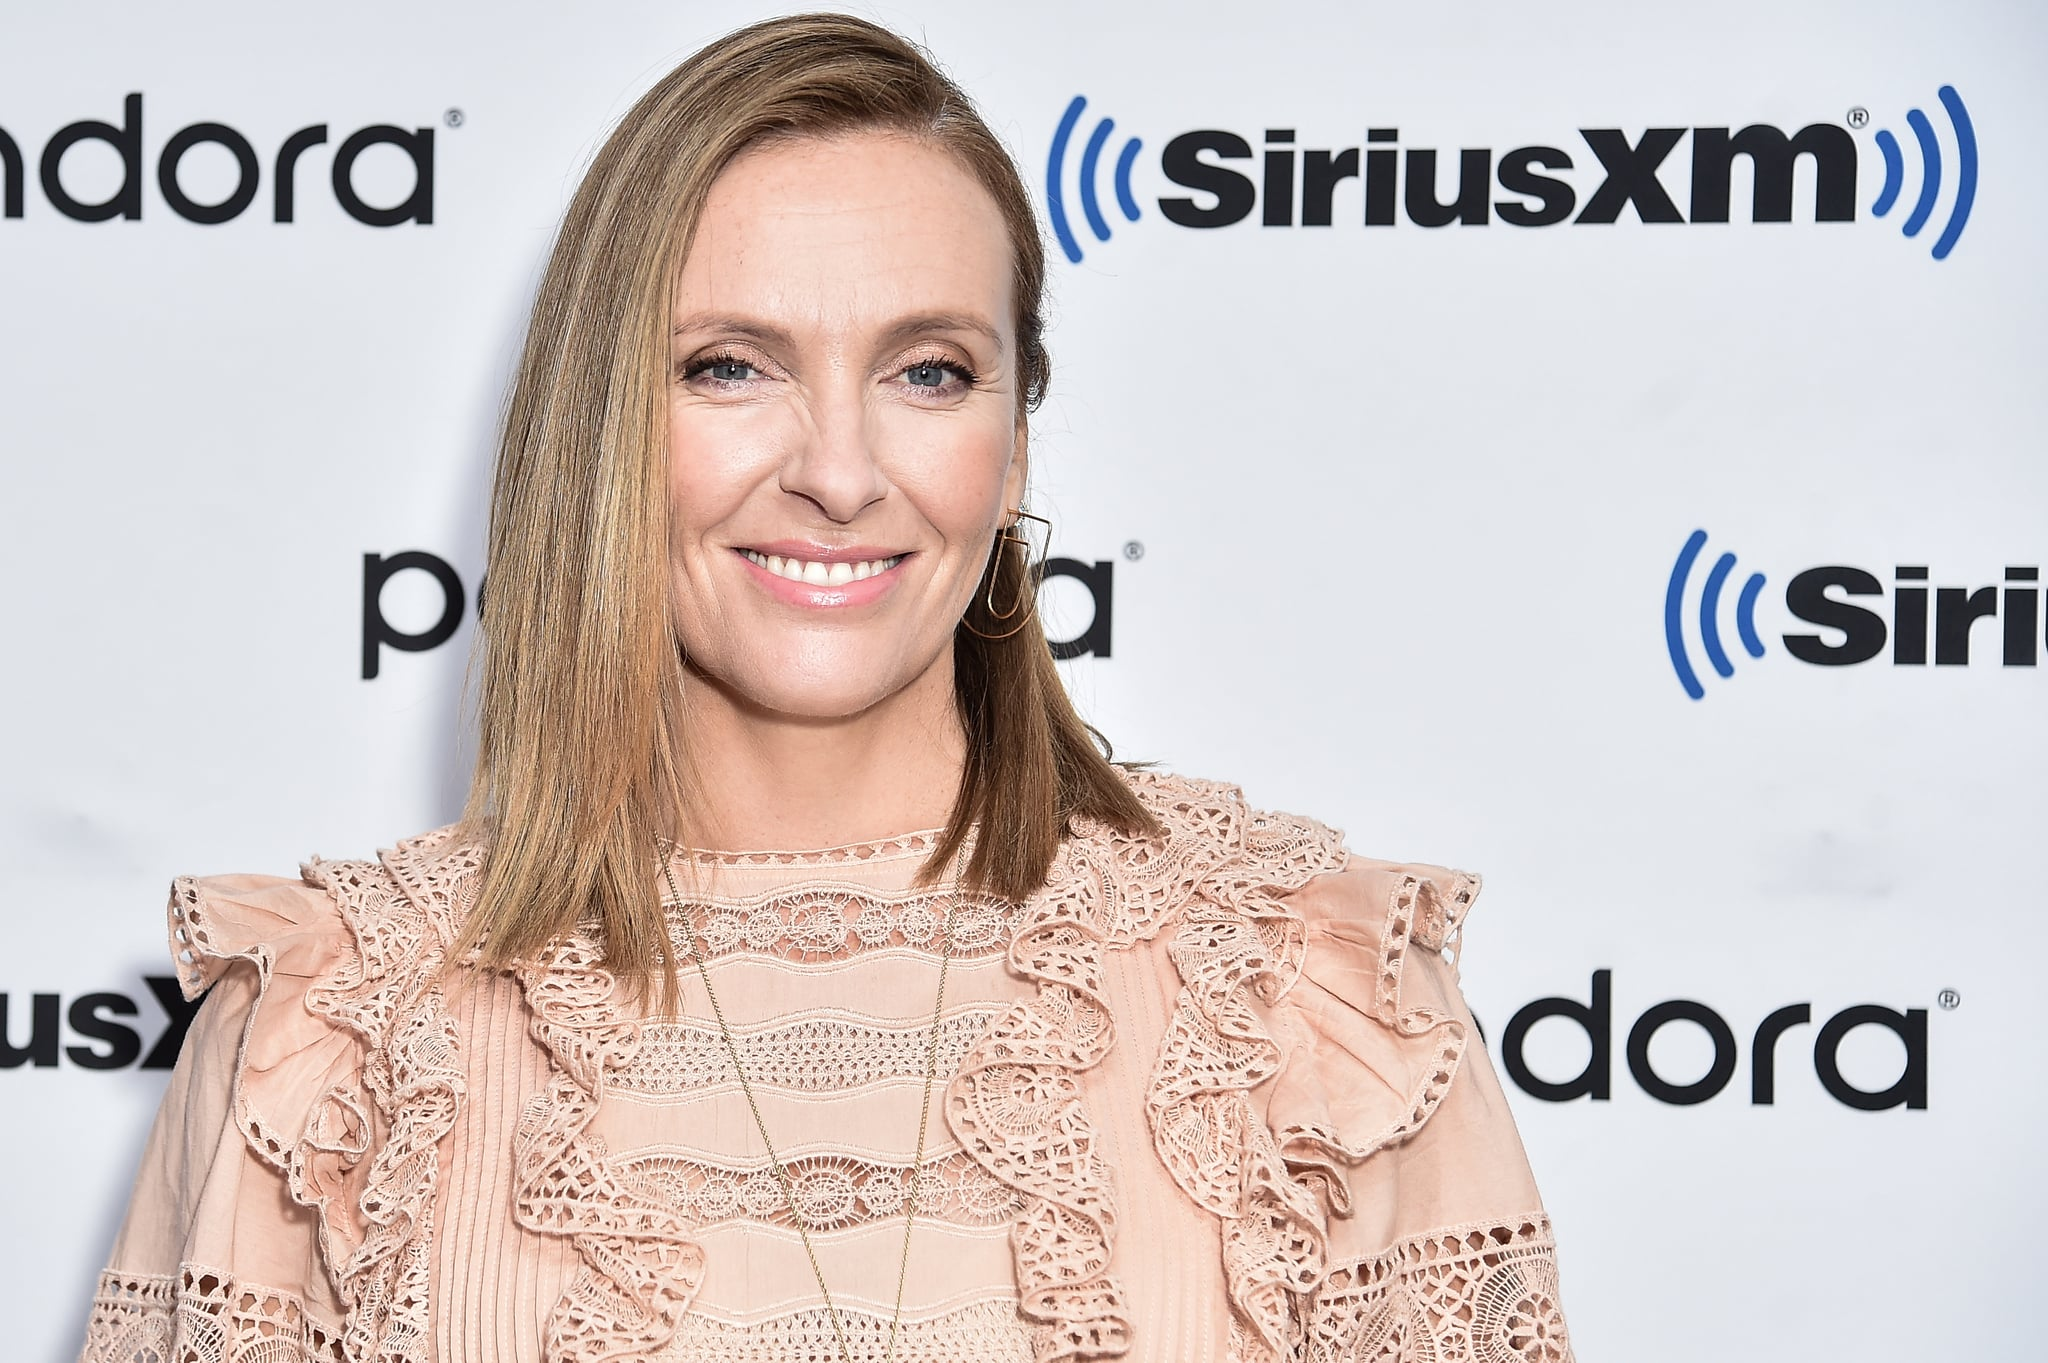 NEW YORK, NEW YORK - SEPTEMBER 10: (EXCLUSIVE COVERAGE) Toni Collette visits SiriusXM Studios on September 10, 2019 in New York City. (Photo by Steven Ferdman/Getty Images)